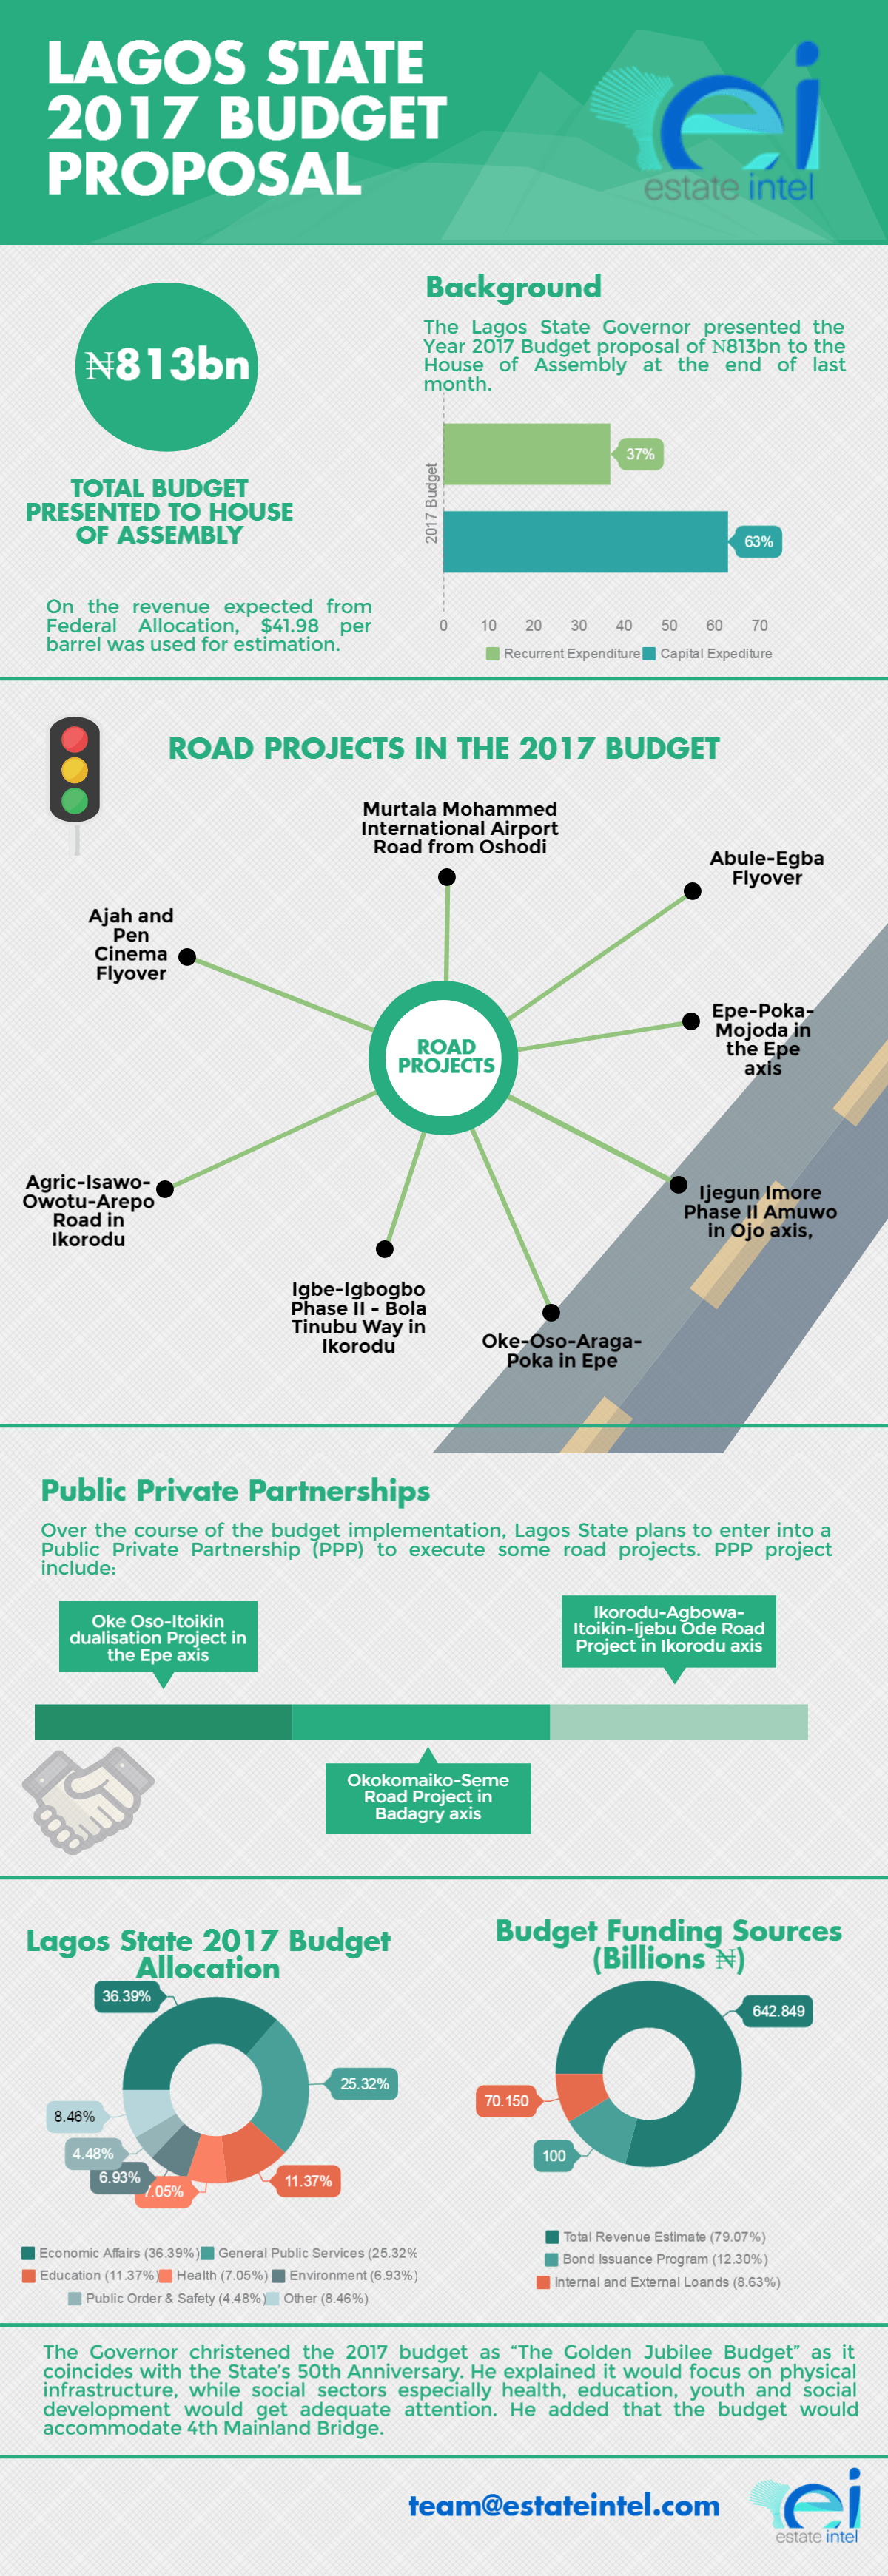 Infographic: Lagos State 2017 Budget Proposal To Focus on Infrastructure